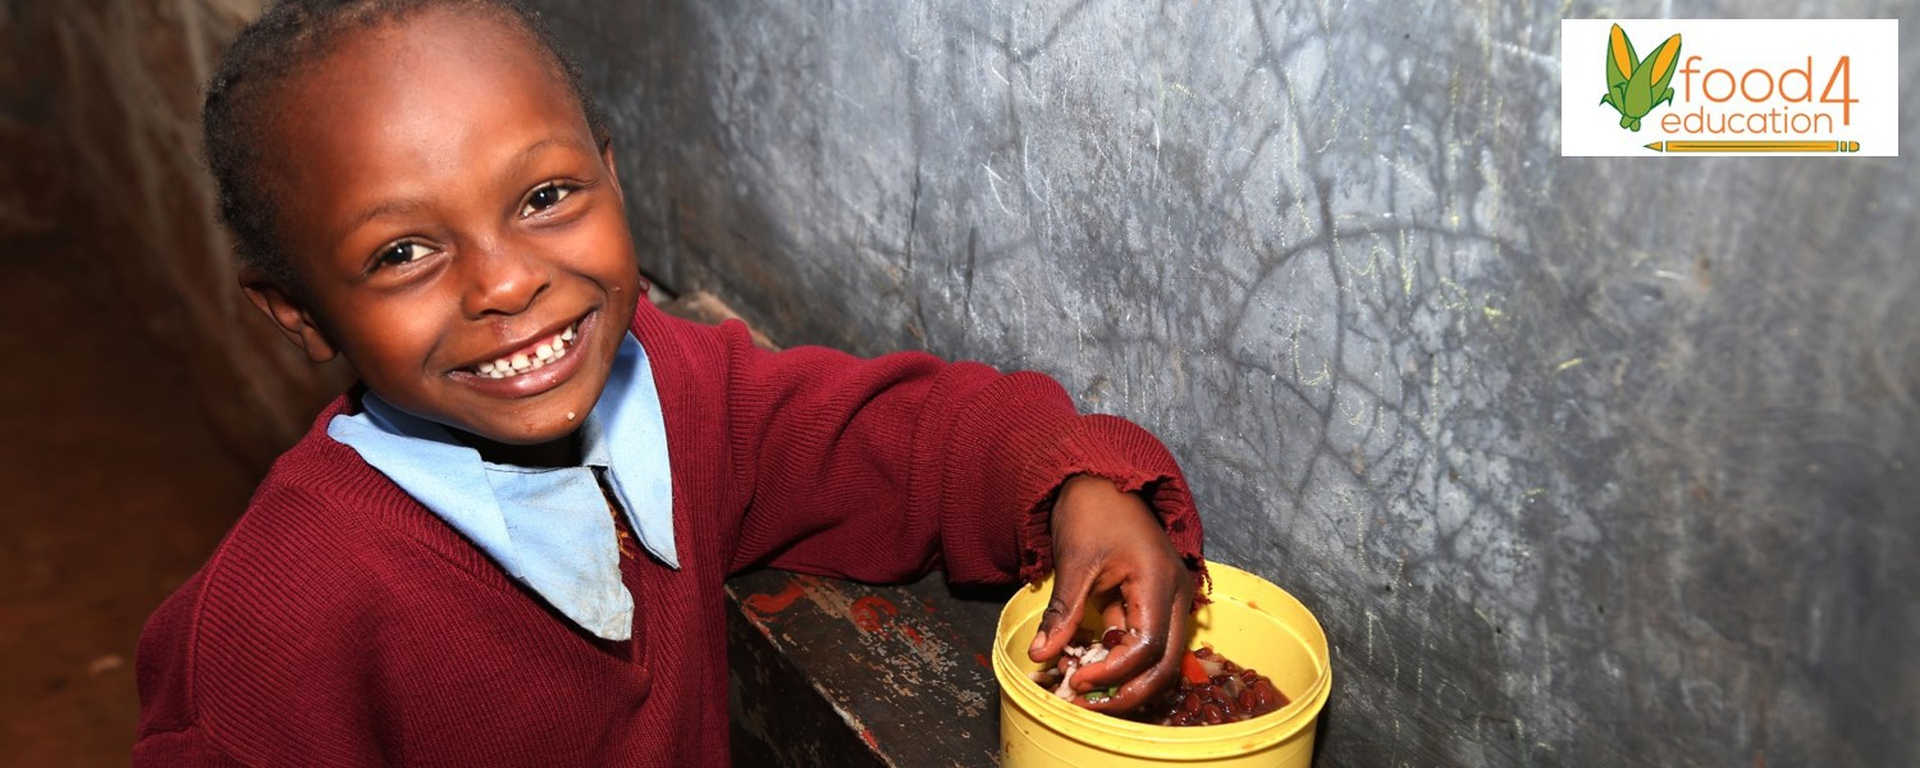 Food for Education - Senior Development Manager Movemeback African opportunity cover image